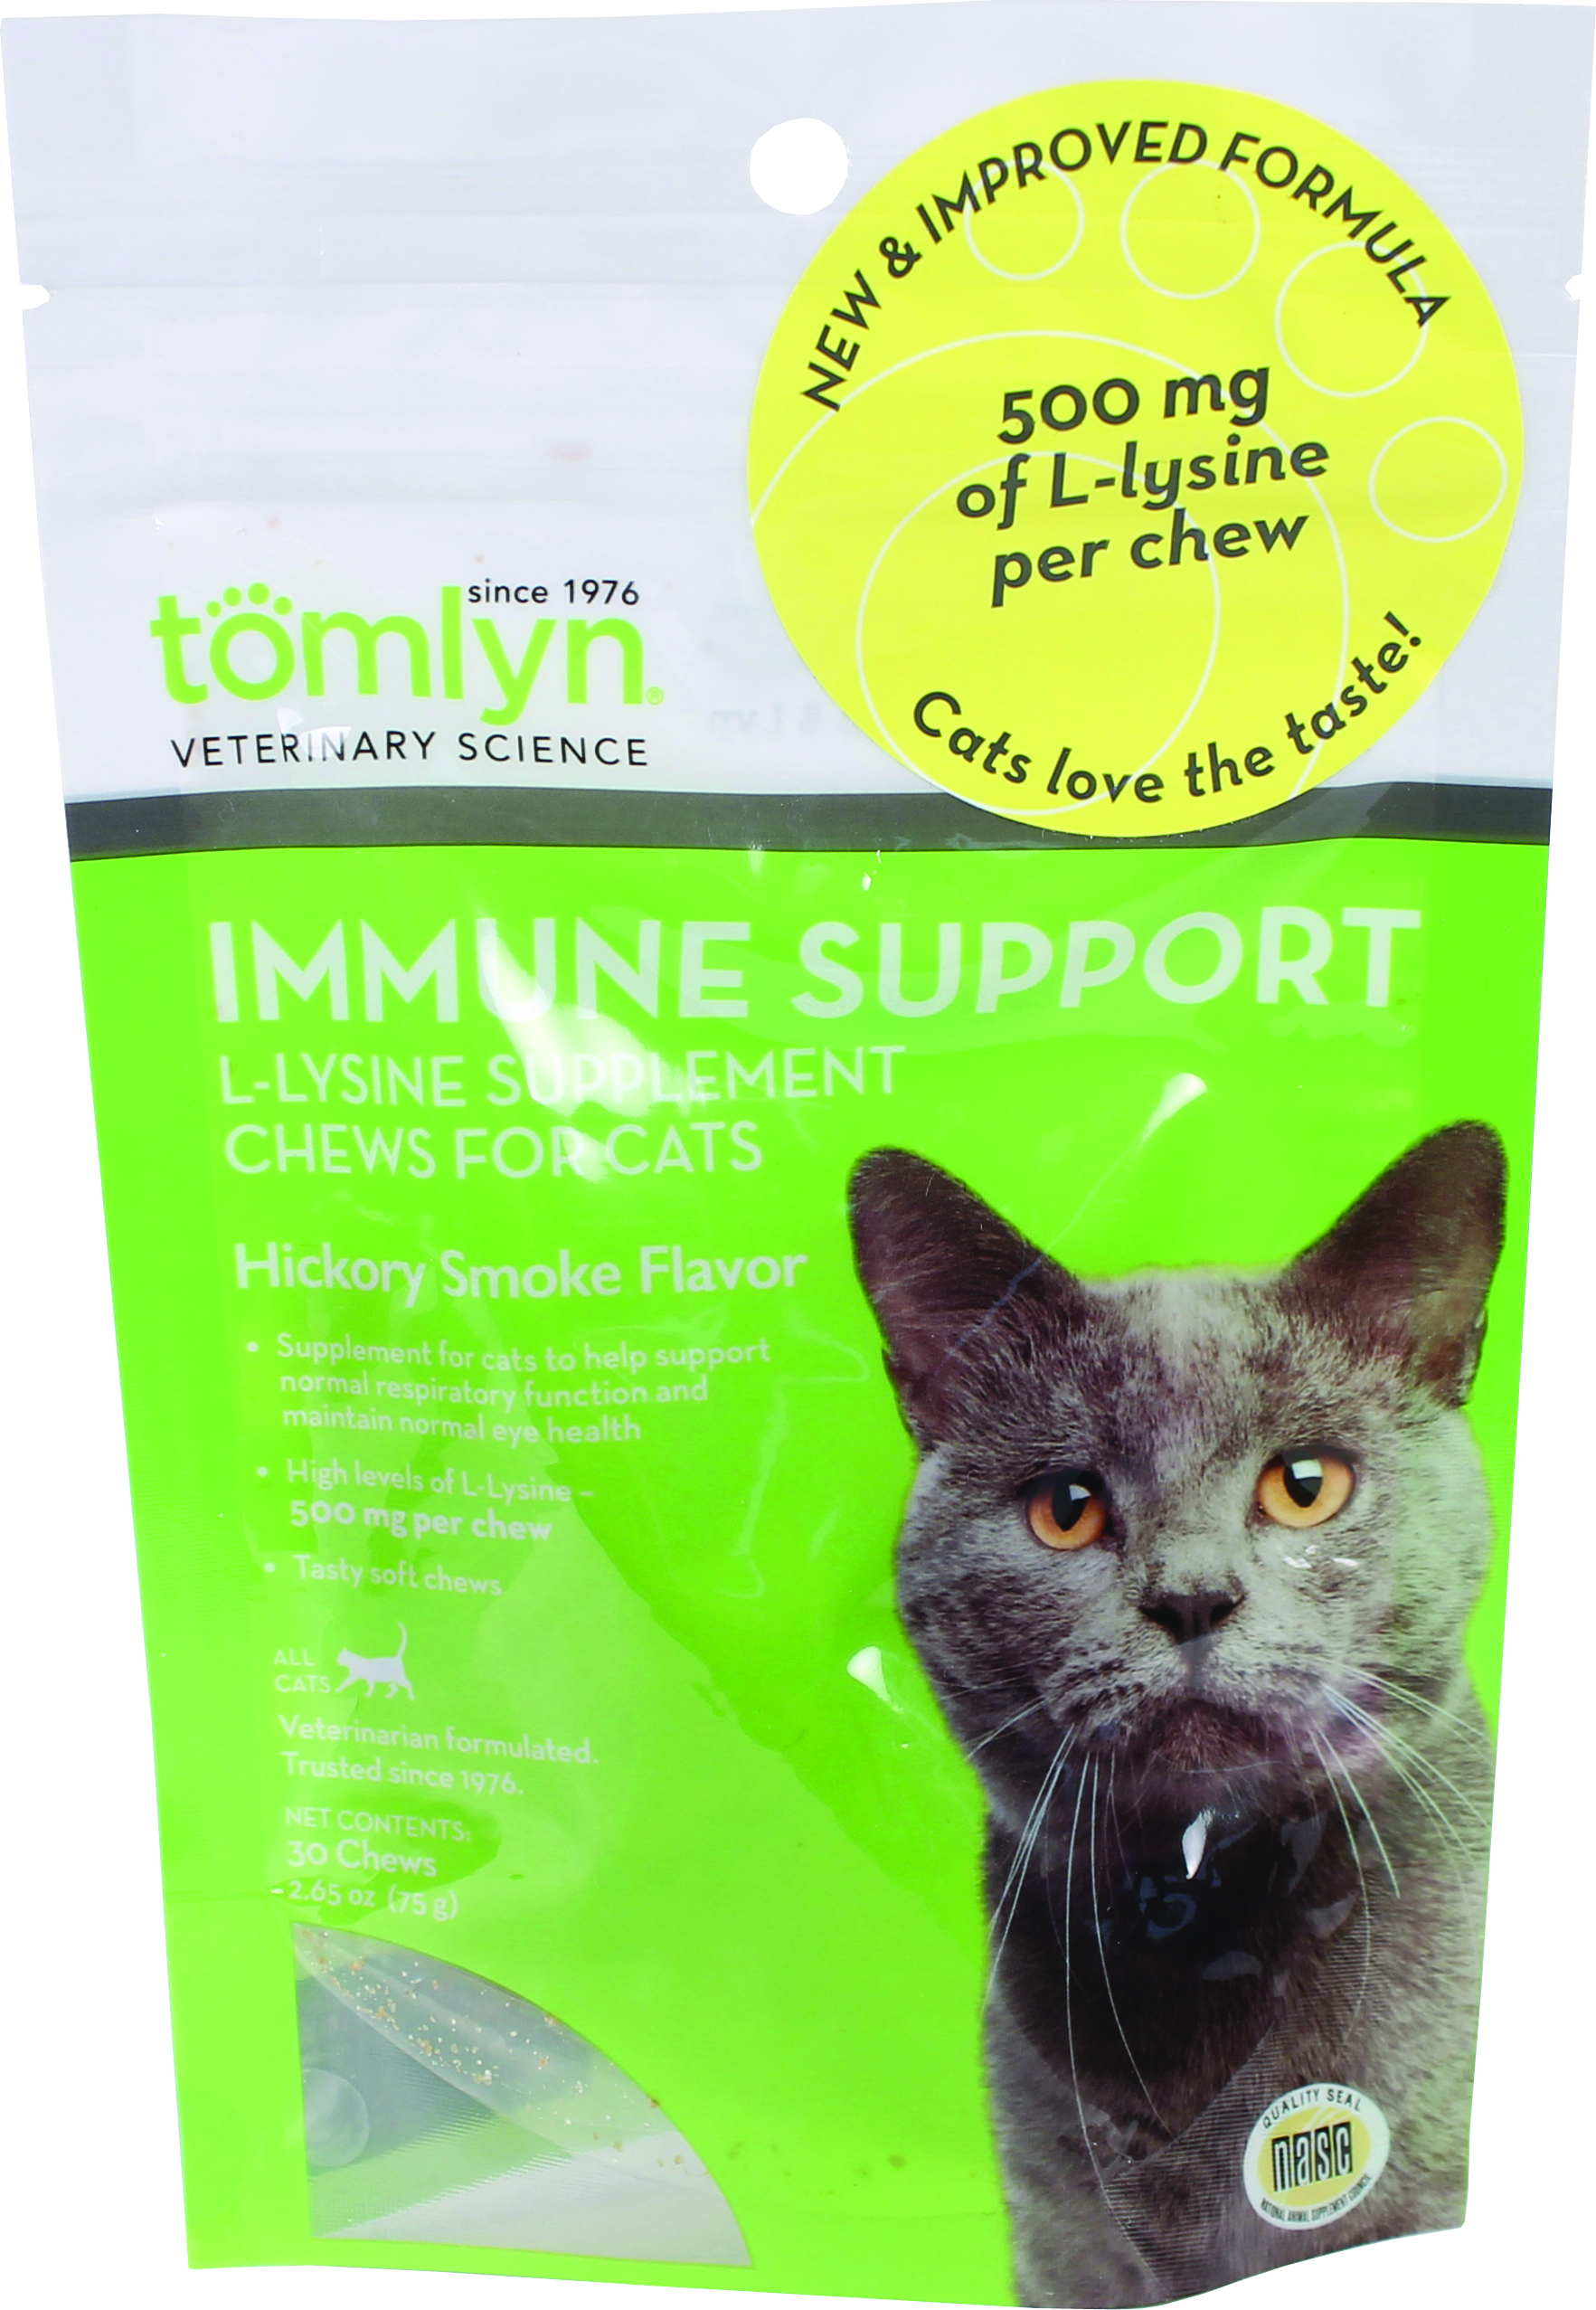 IMMUNE SUPPORT L-LYSINE SUPPLEMENT CHEWS FOR CATS